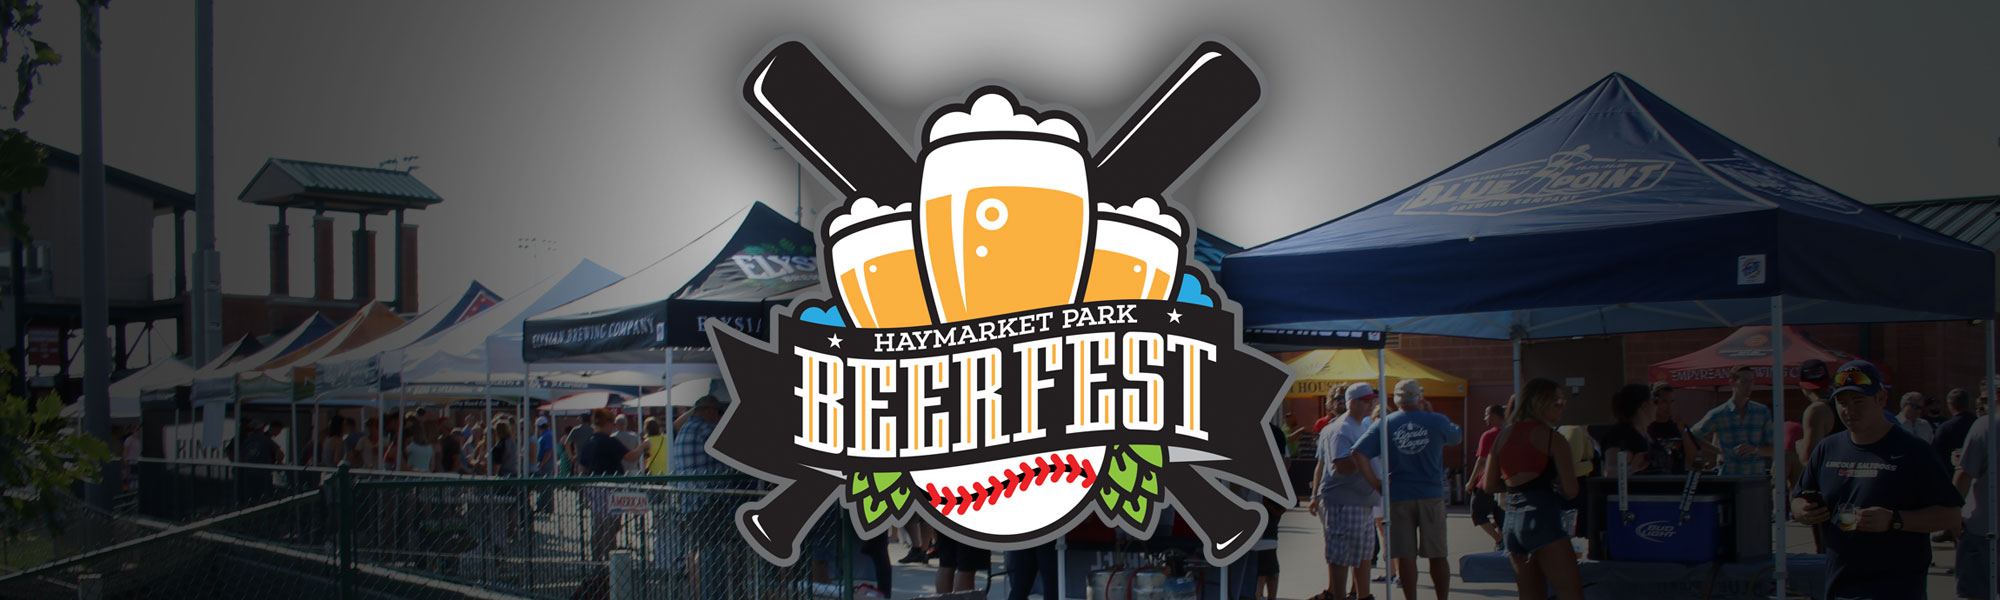 Saltdogs News - BeerFest